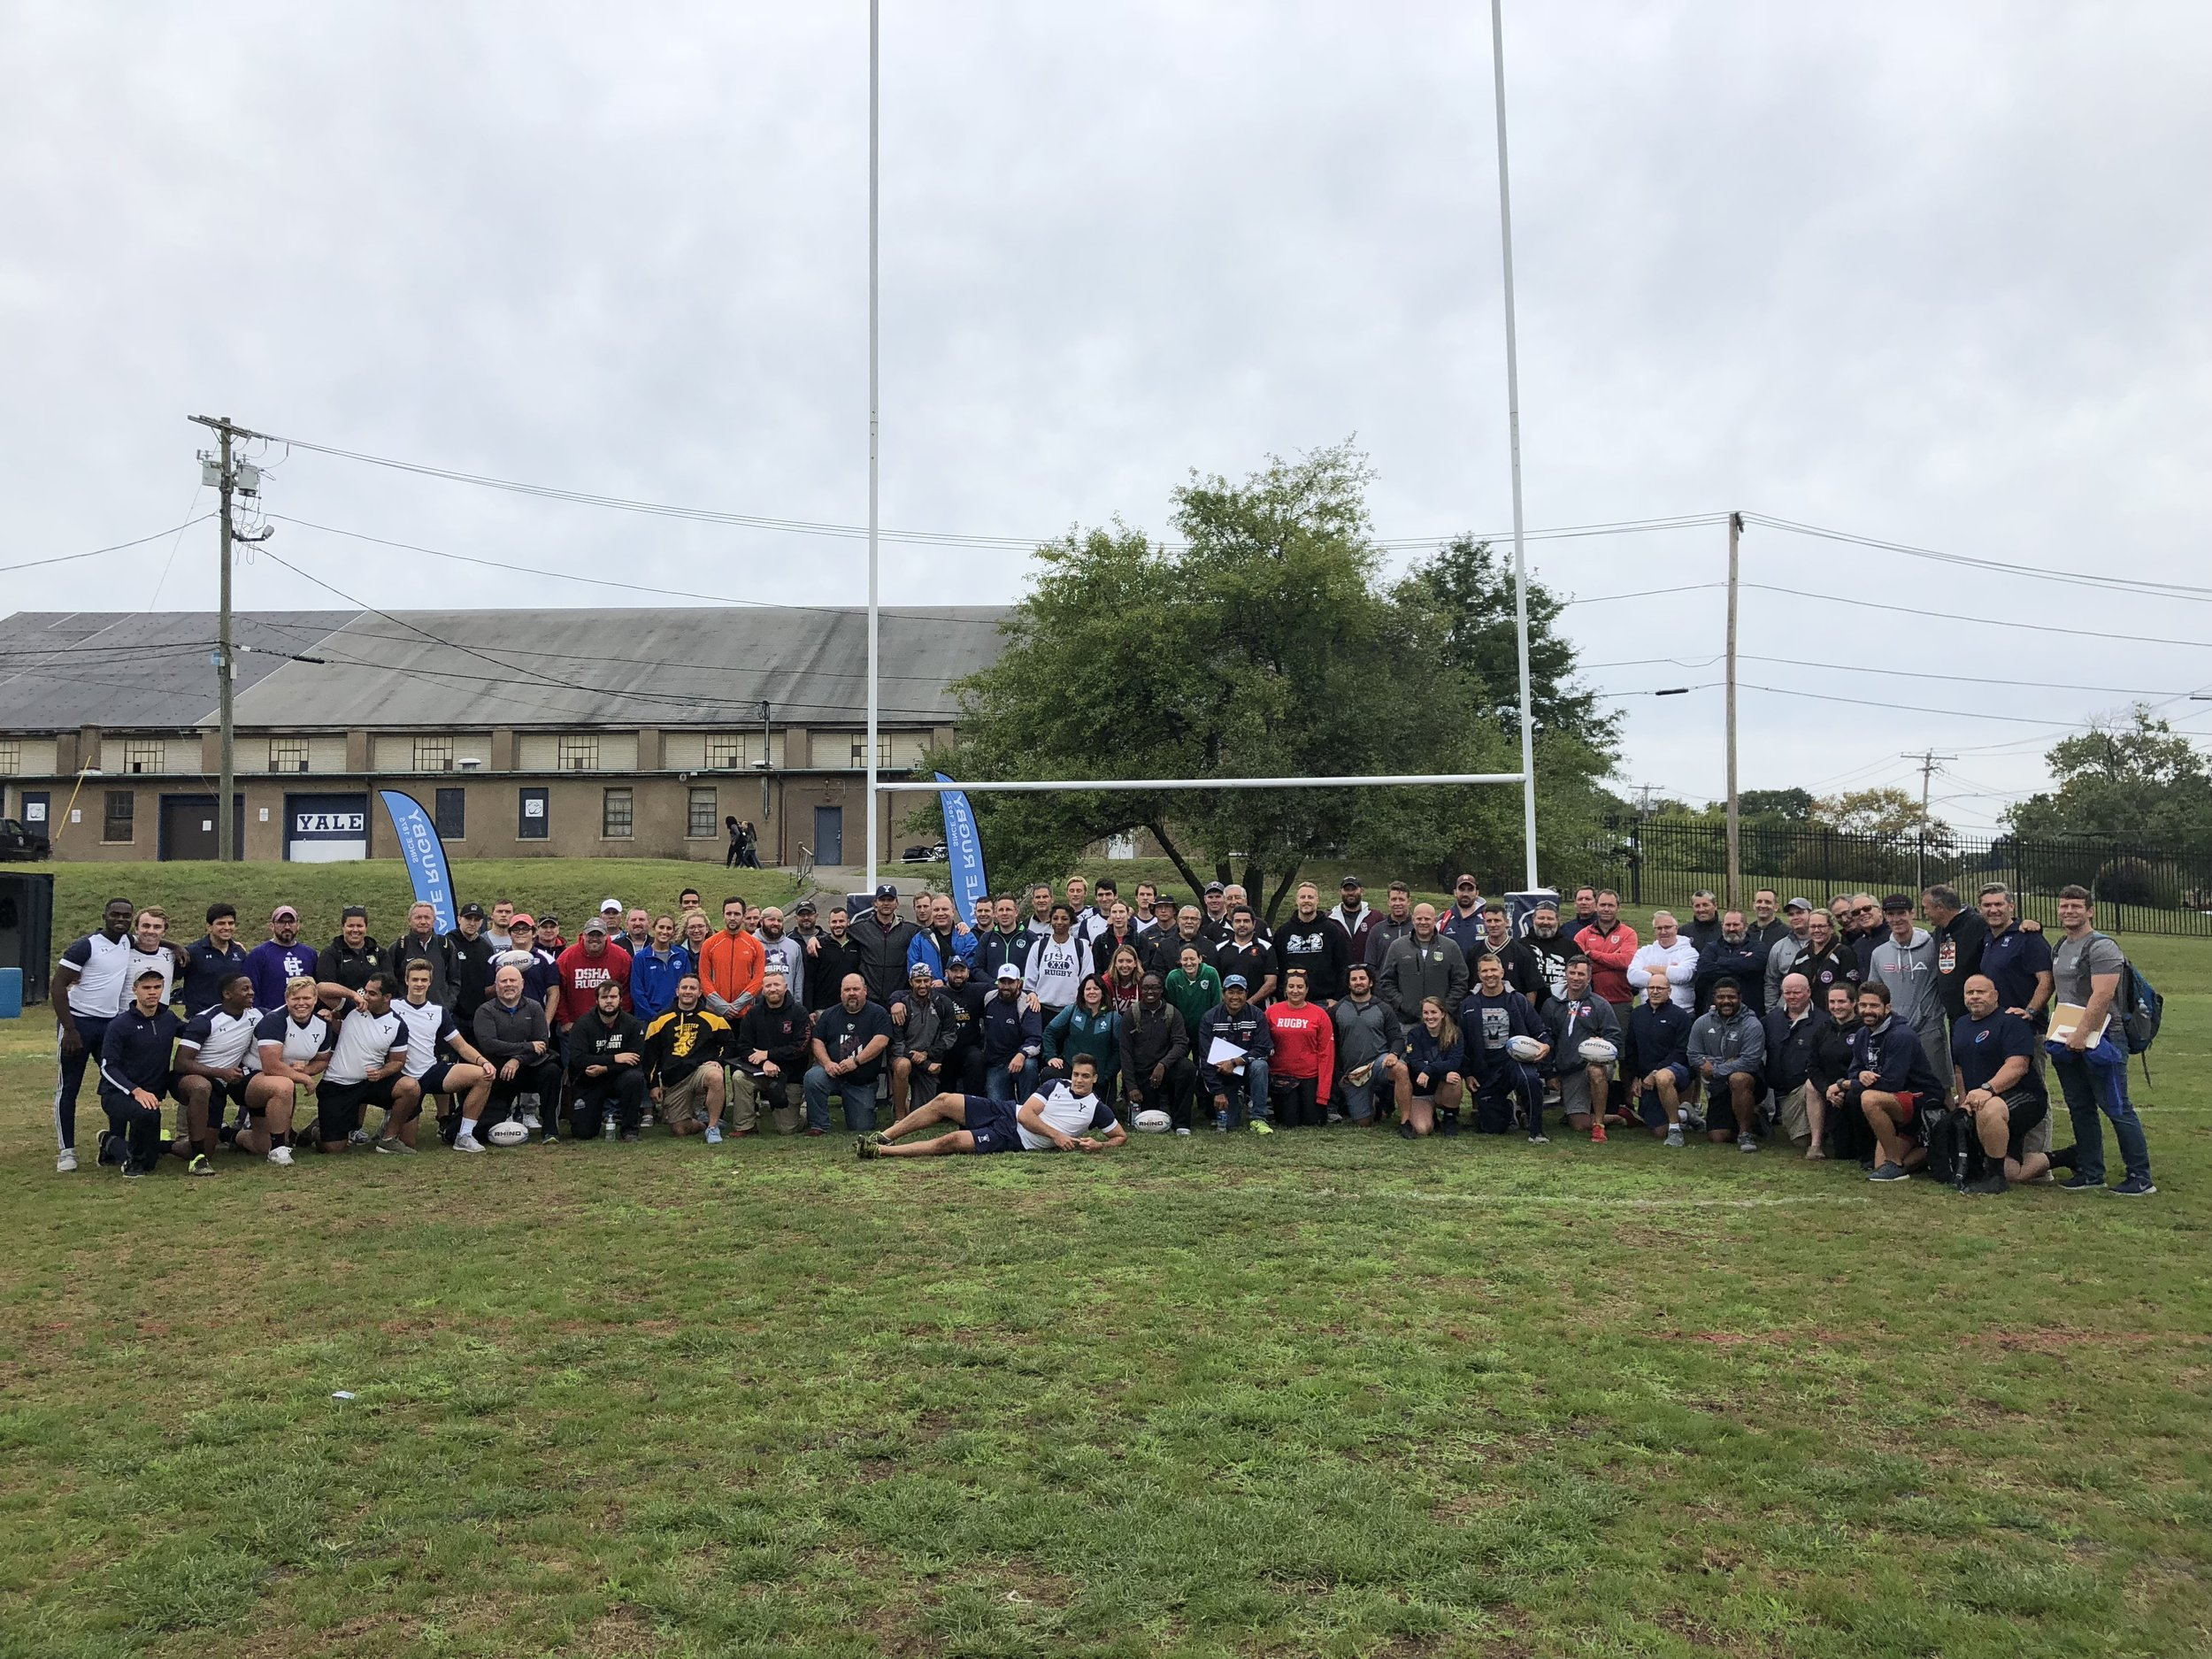 The attendees after the afternoon field session